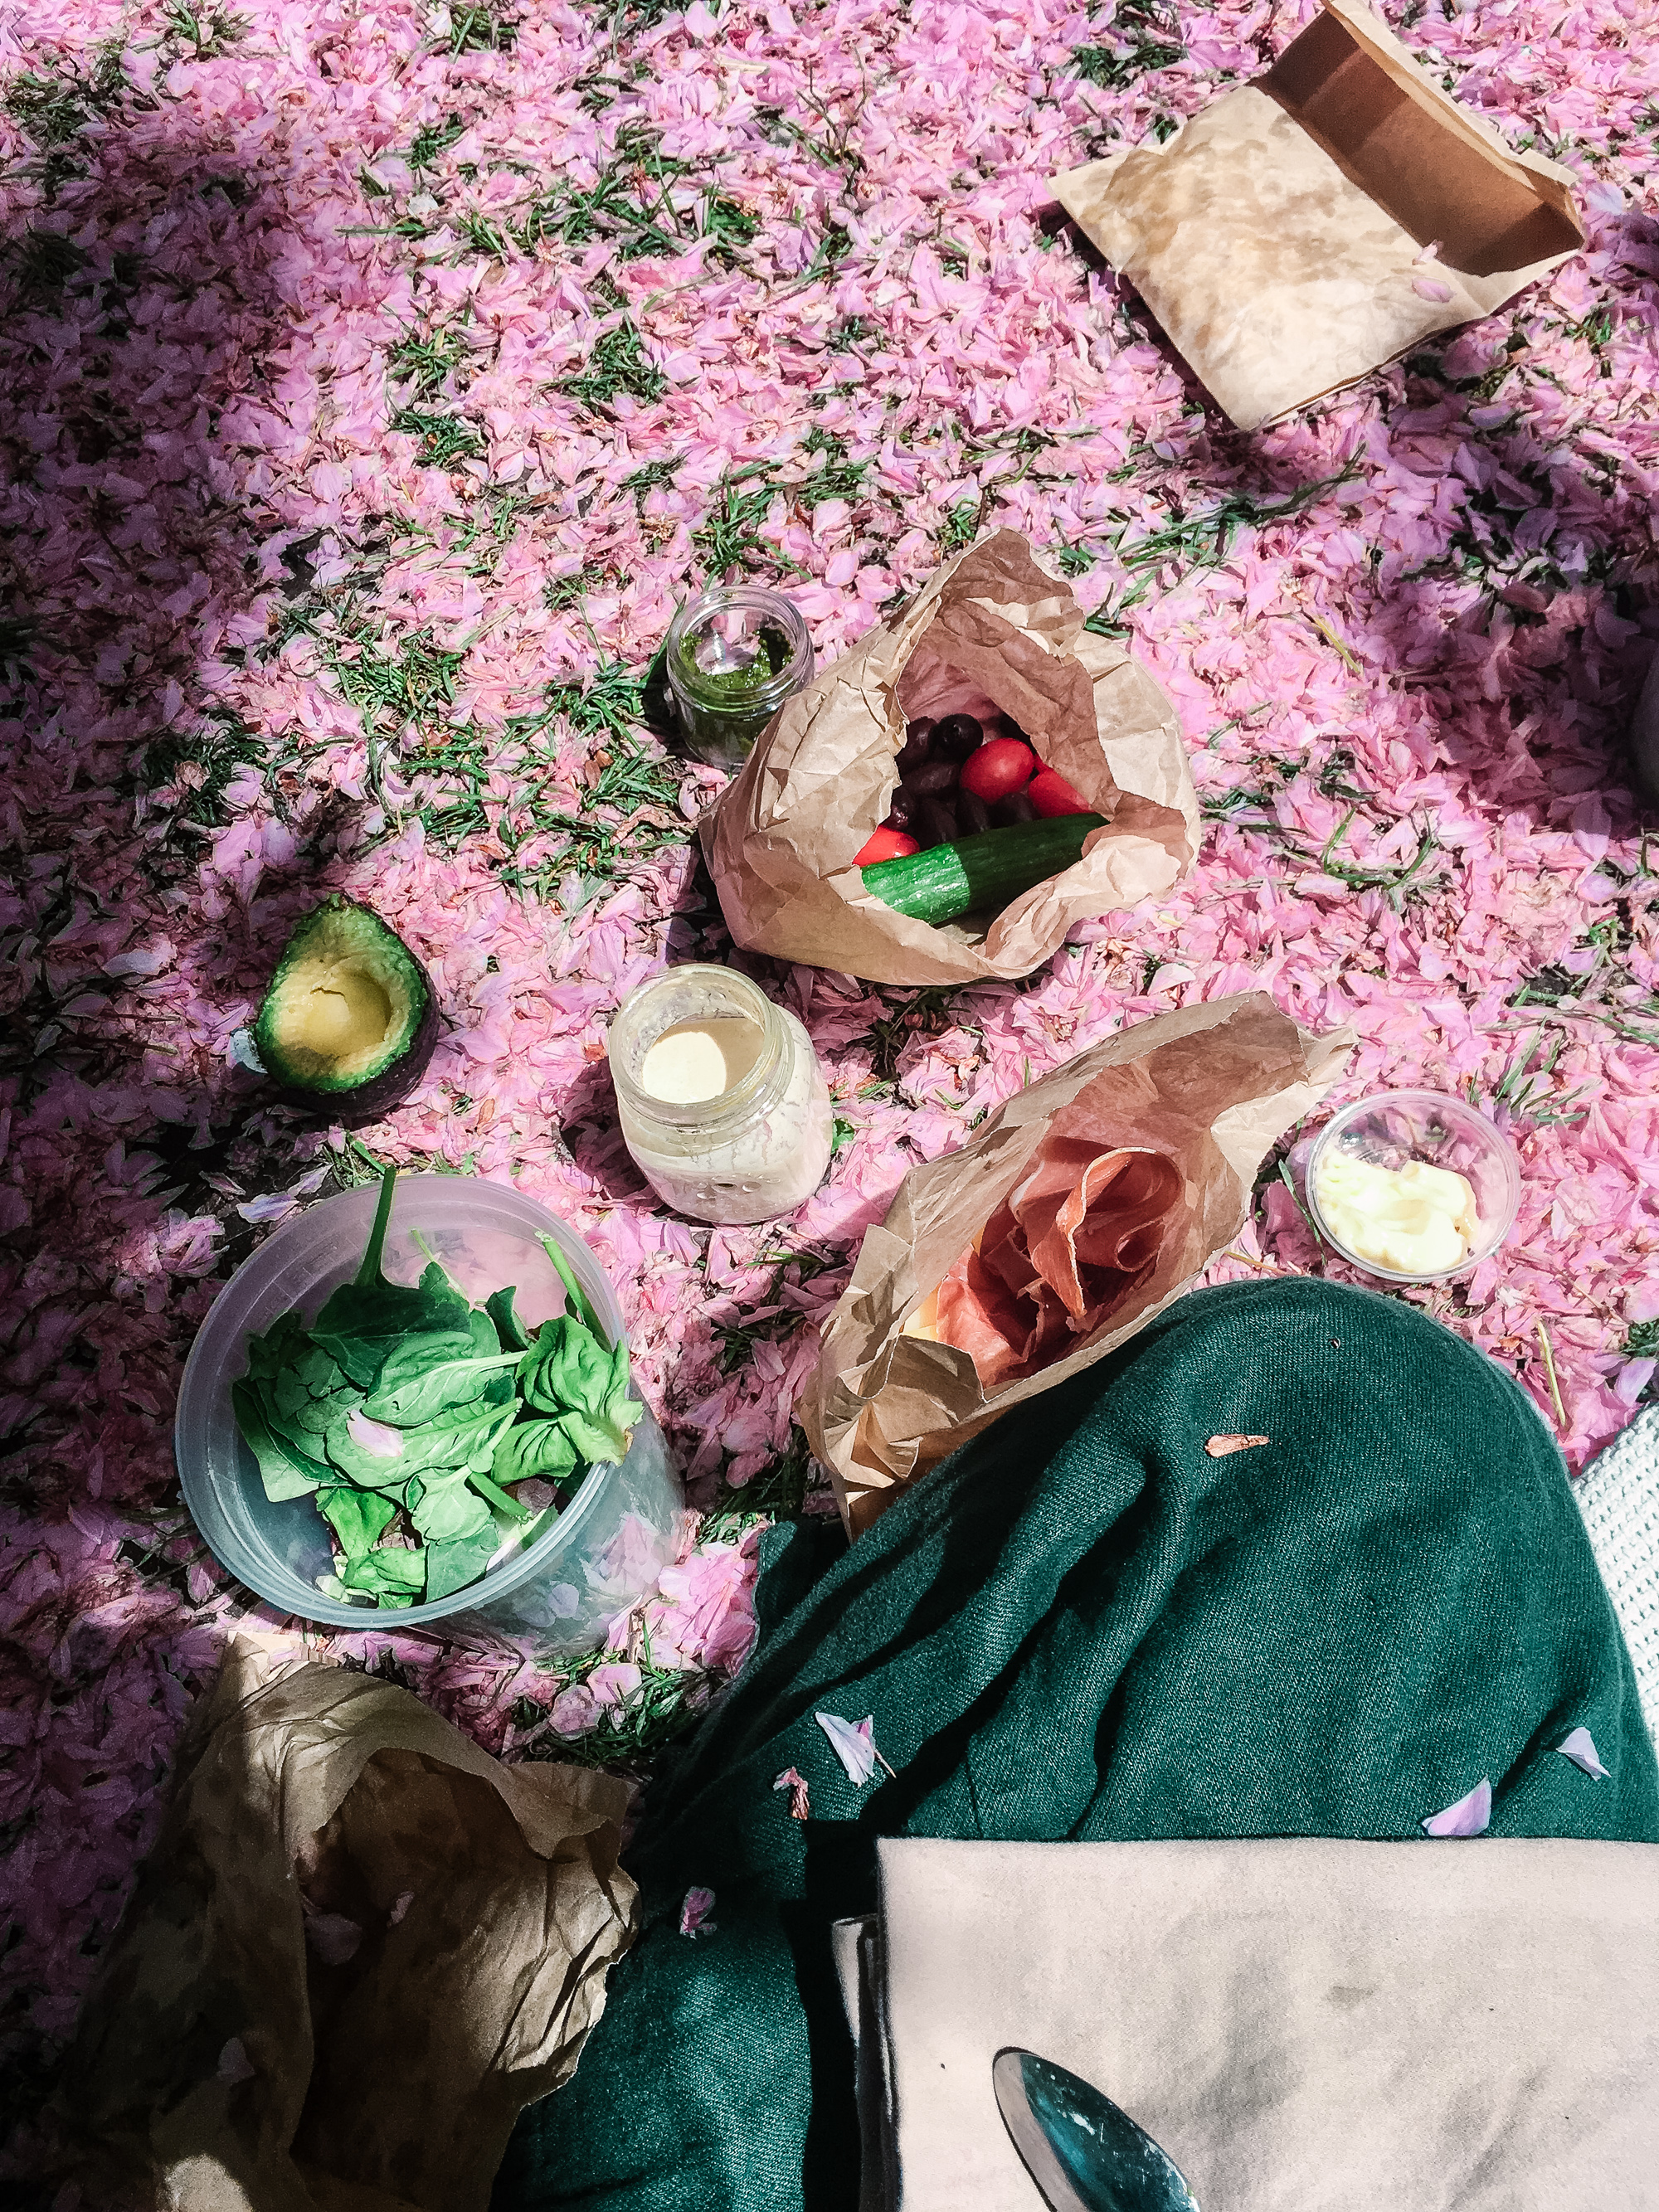 A picnic at the Brooklyn Botanical Gardens. during cherry blossom season. We found out a few minutes after this photo was taken that picnics are not allowed and had to pack up.